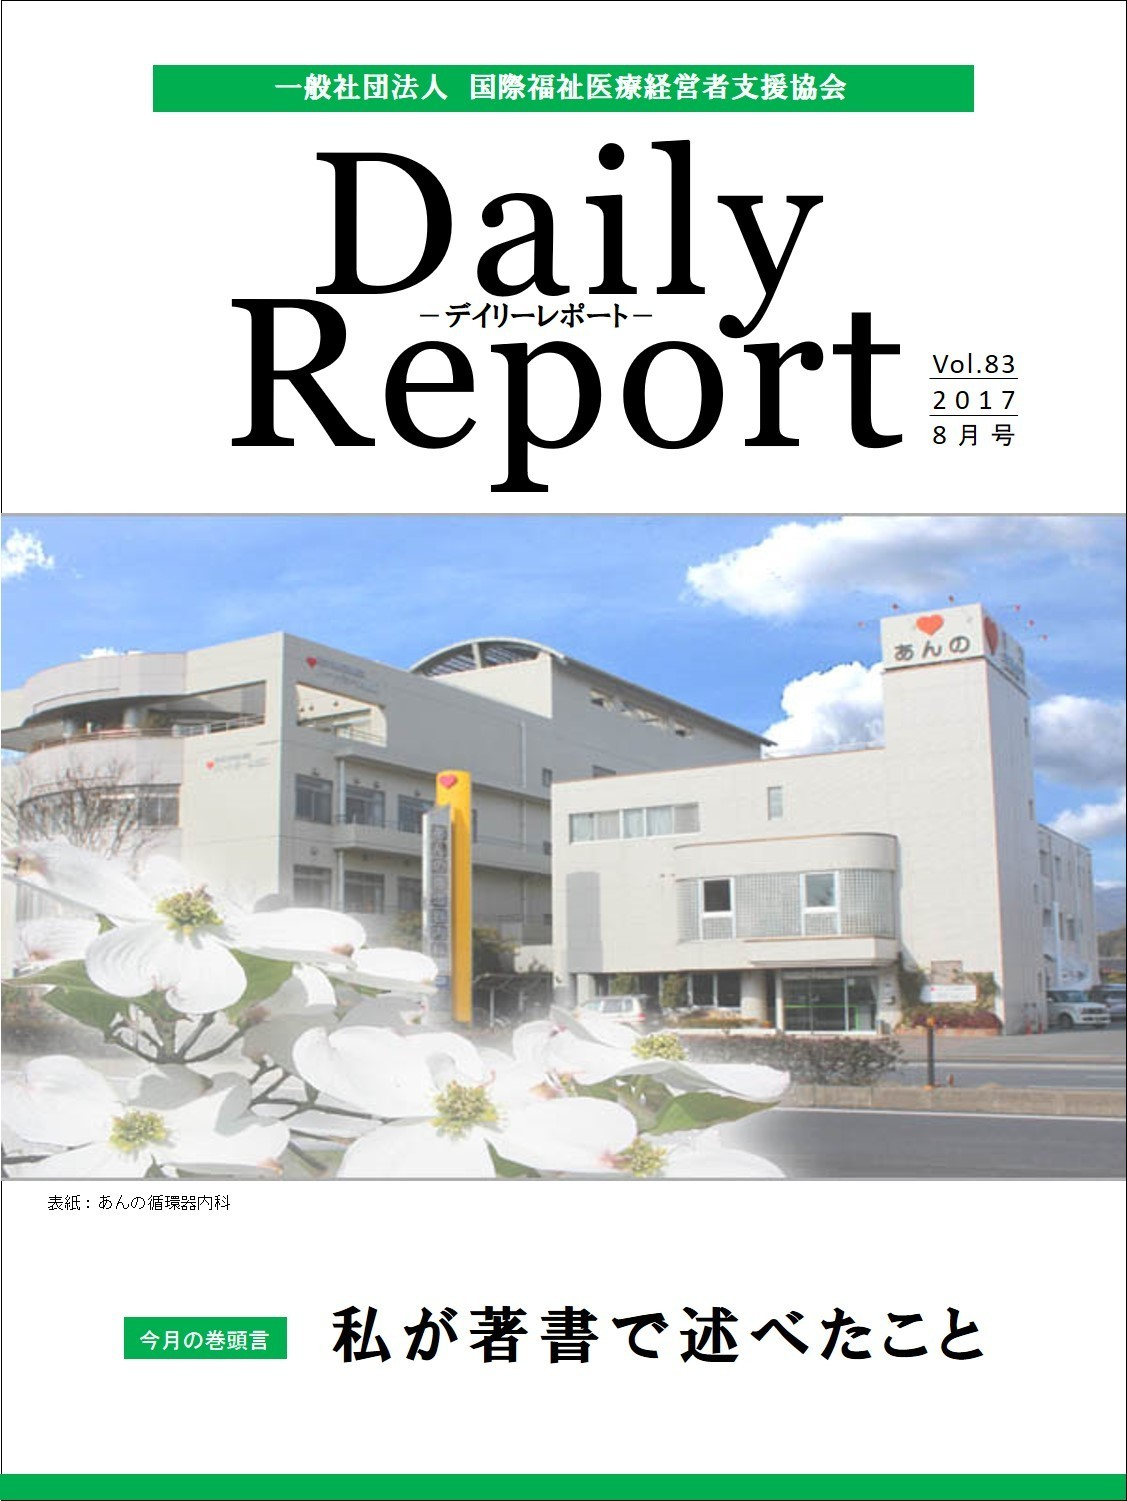 DailyReport